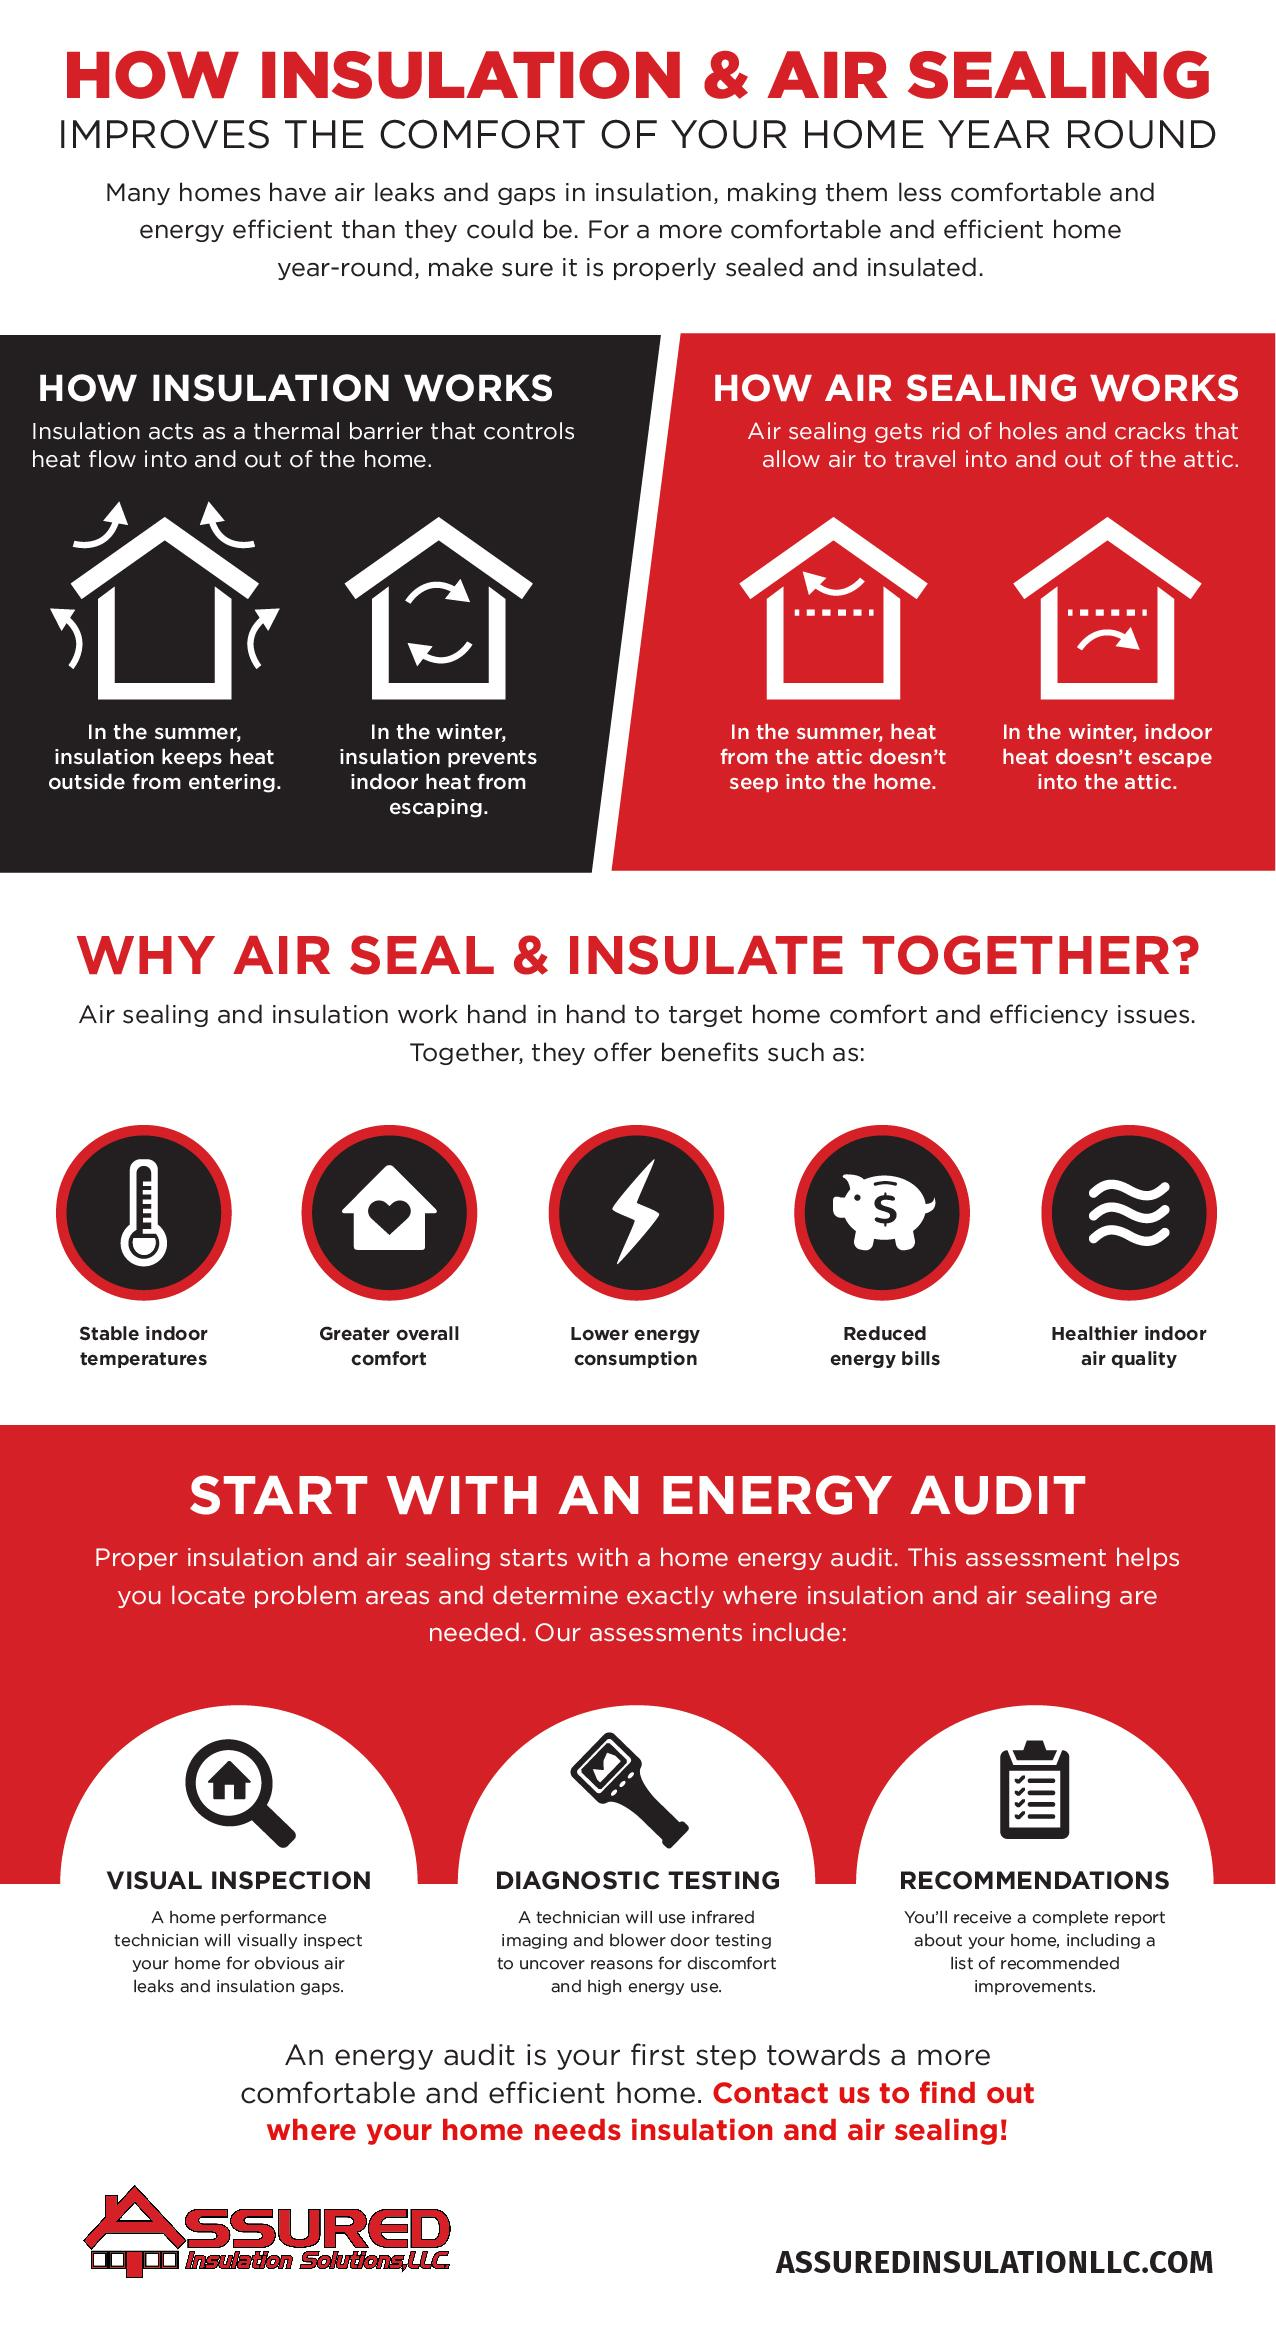 why air seal & insulate together? infographic assured insulation